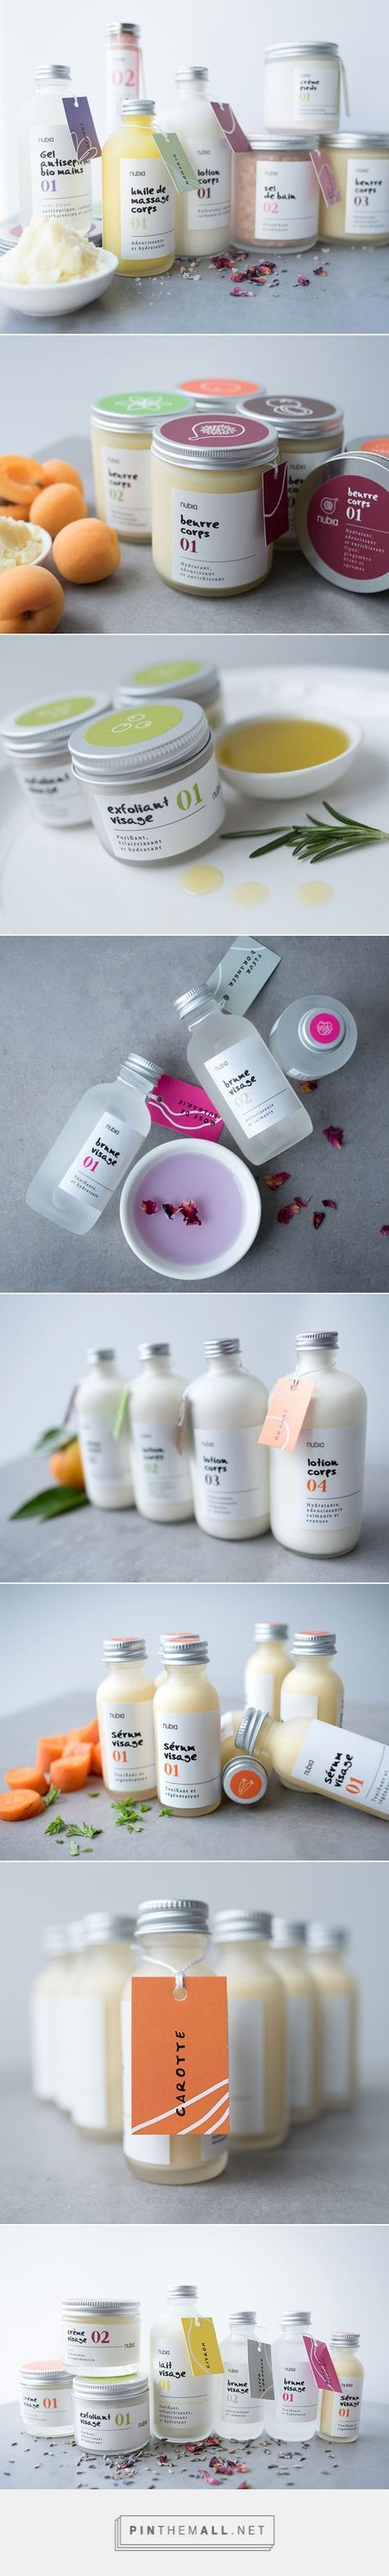 Nubia | Lovely Package... - a grouped images picture - Pin Them All